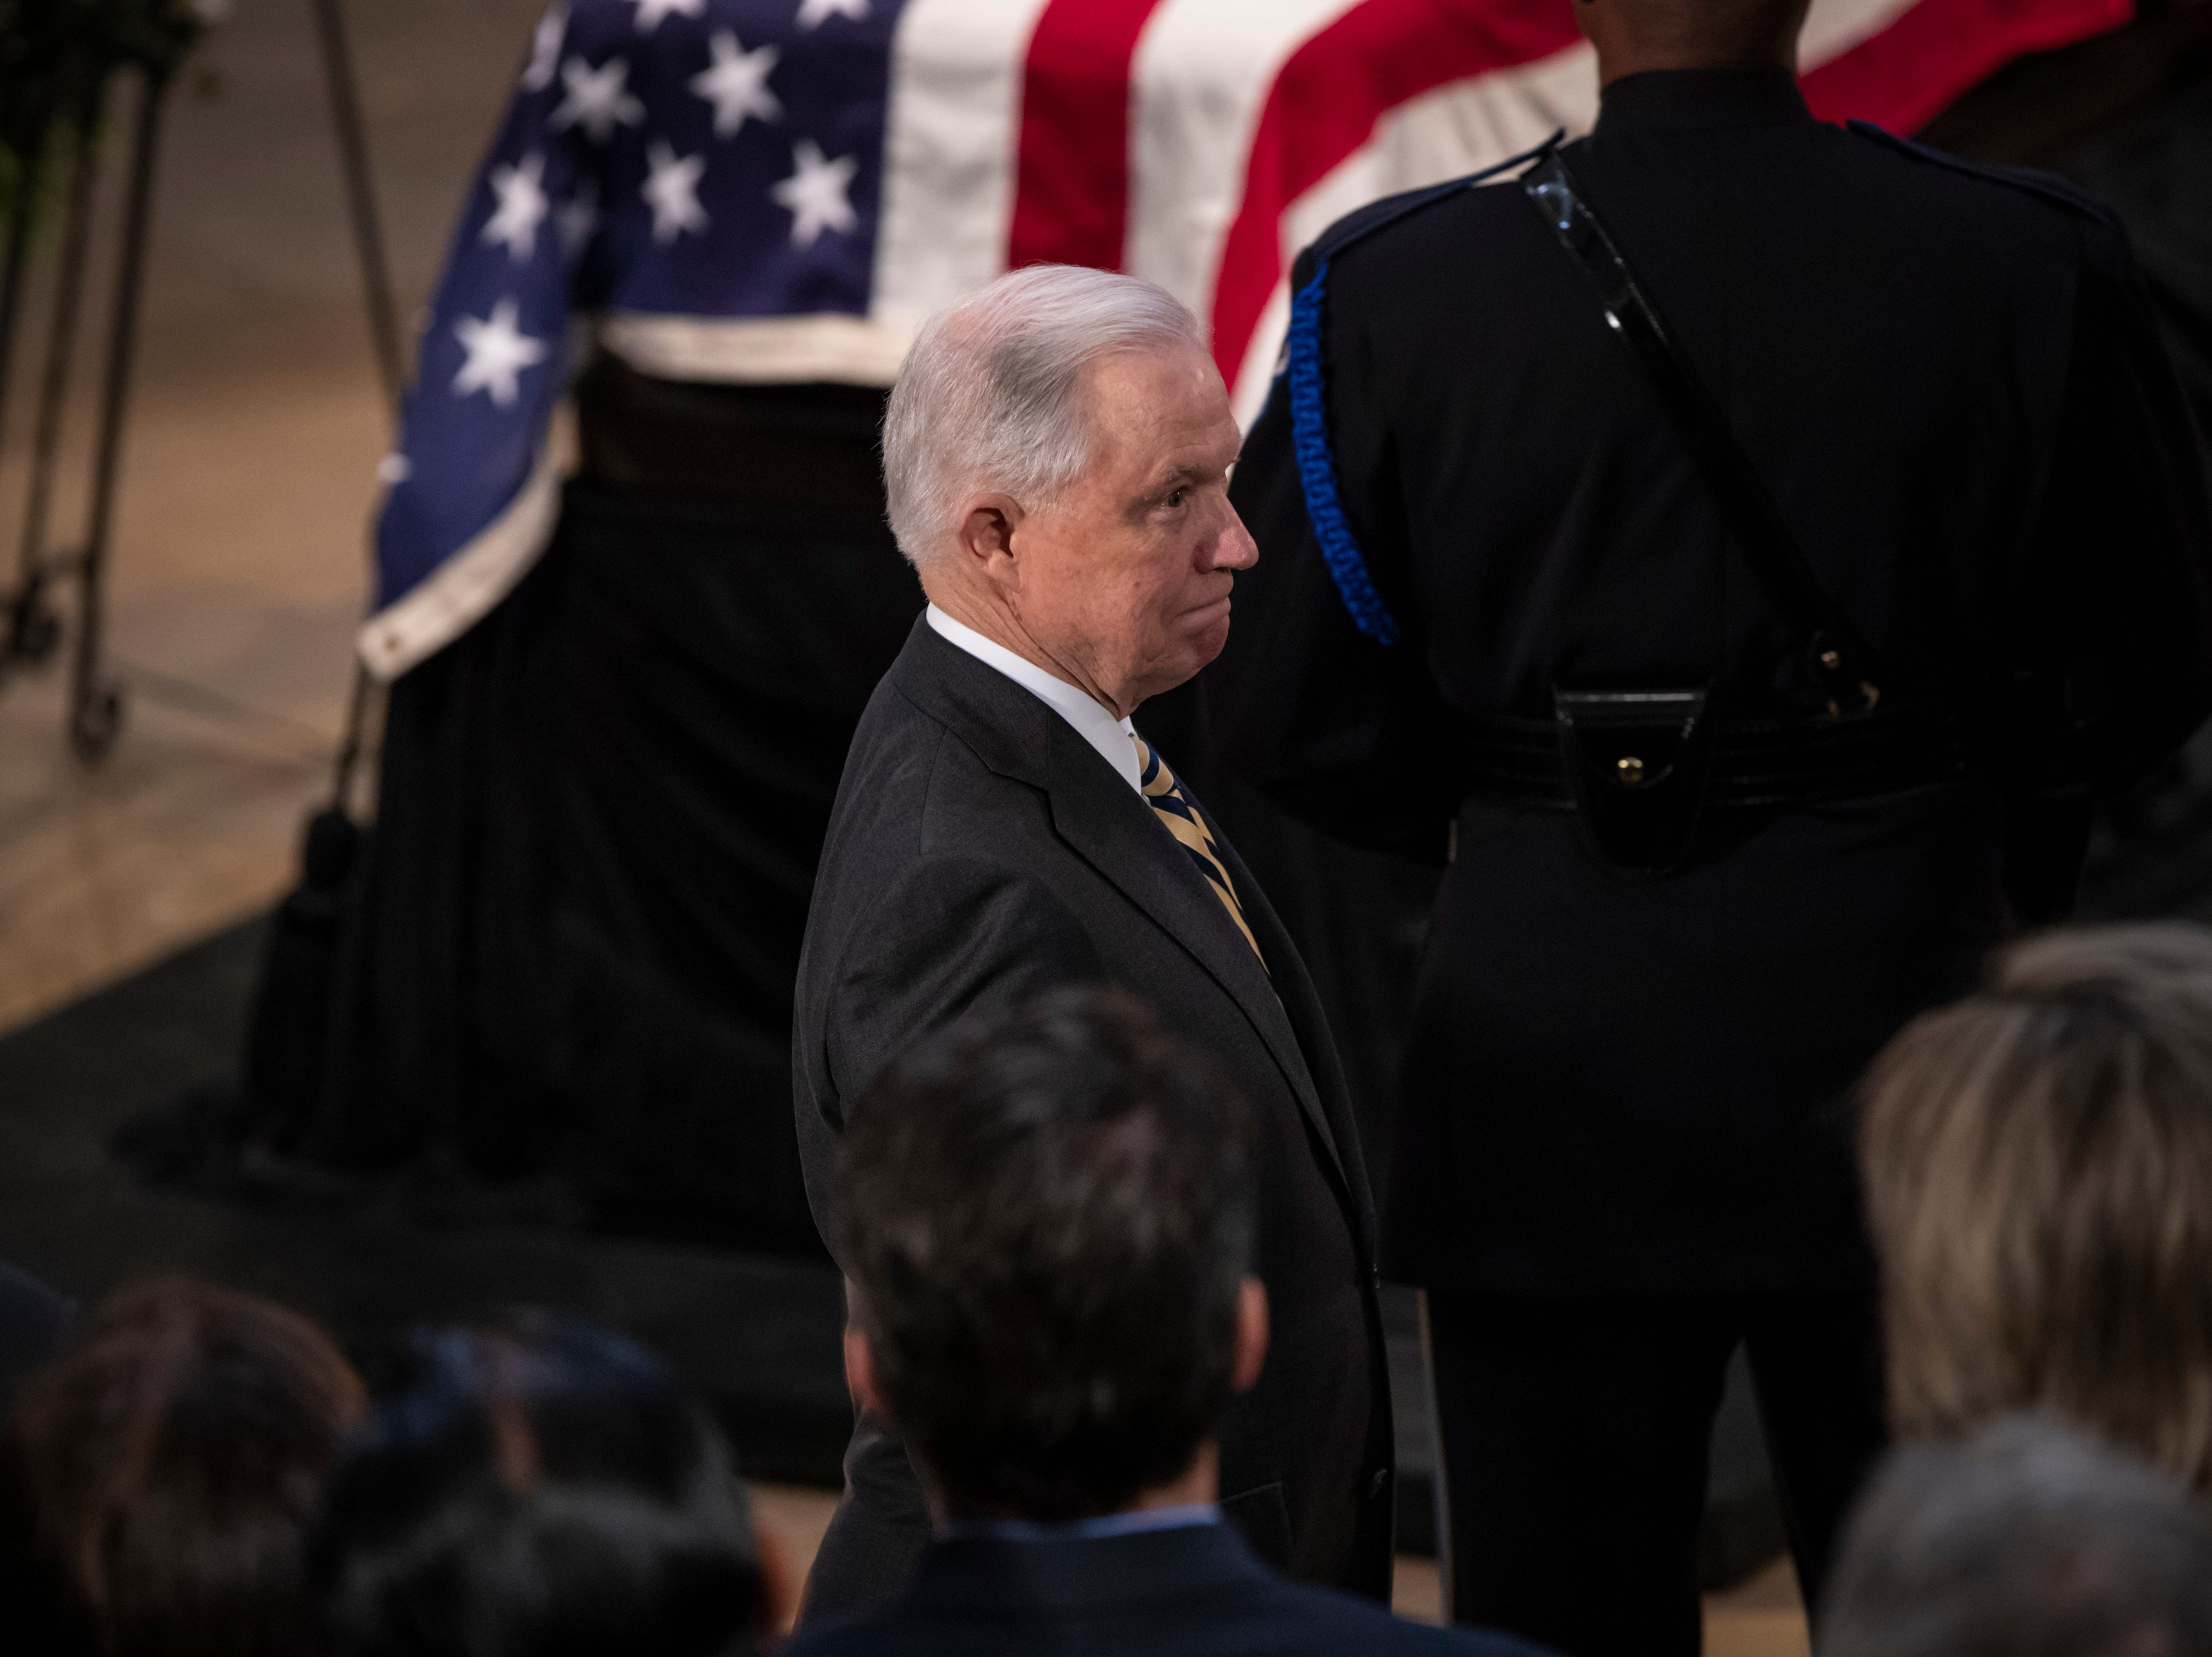 Attorney General Jeff Sessions passes by the flag-draped casket of Sen. John McCain of Arizona, who lived and worked in Congress over four decades, in the U.S. Capitol rotunda, Friday, Aug. 31, 2018, in Washington. McCain was a six-term senator, a former Republican nominee for president, and a Navy pilot who served in Vietnam, where he endured five-and-a-half years as a prisoner of war. He died Aug. 25 from brain cancer at age 81. (AP Photo/J. Scott Applewhite)